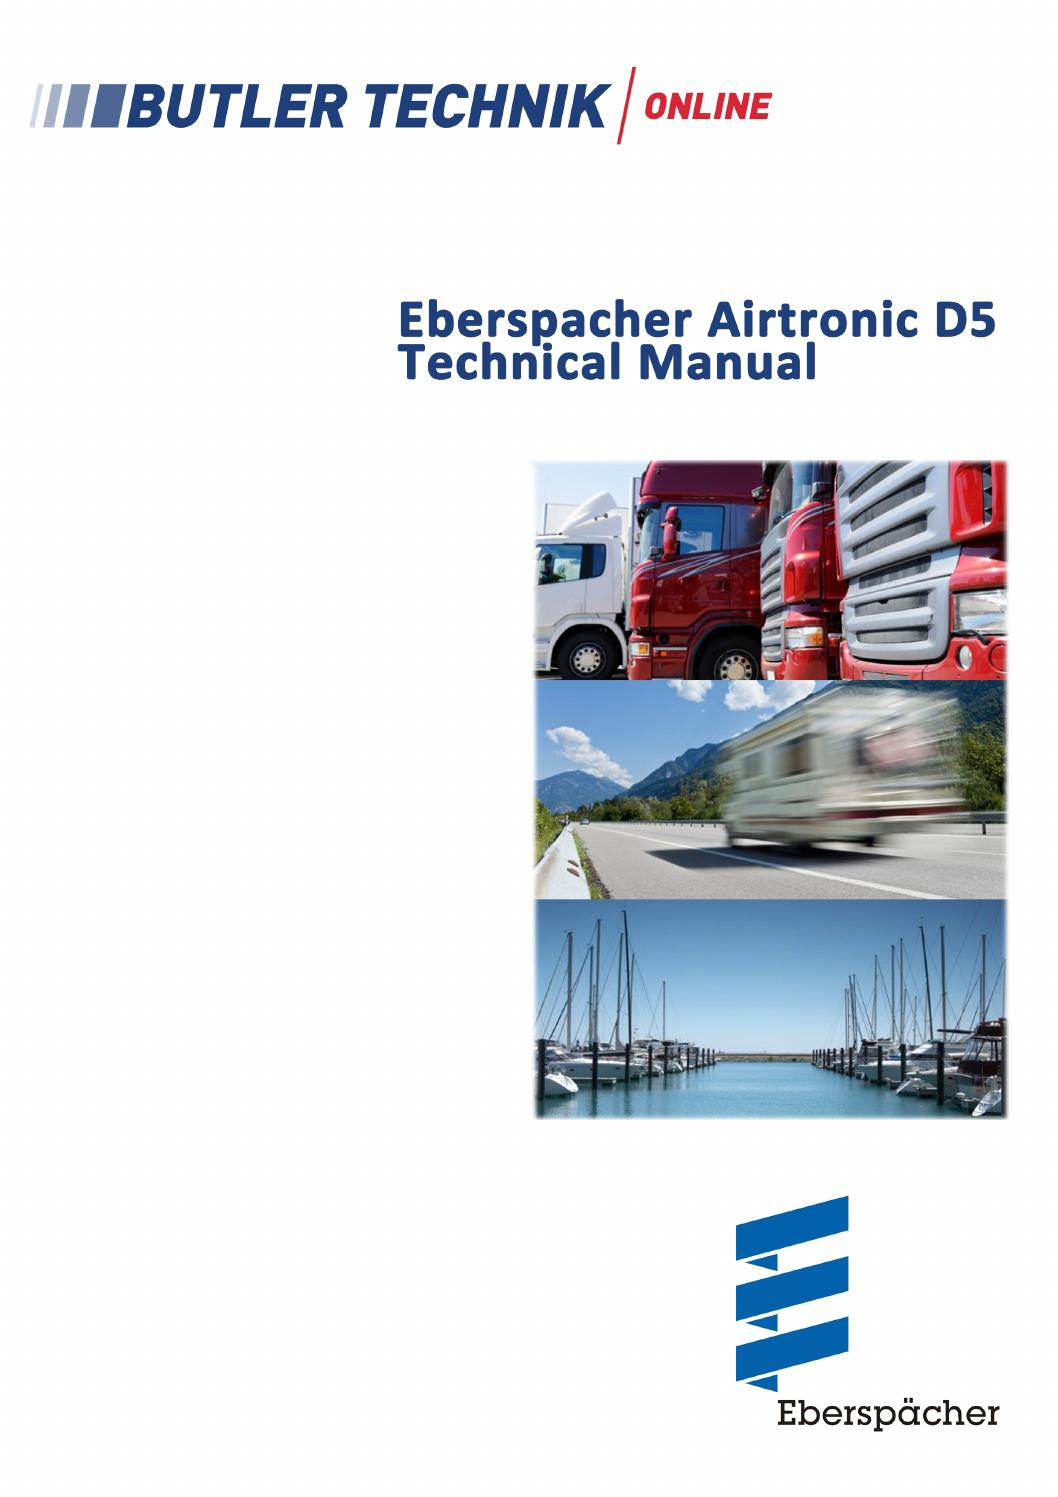 Eberspacher Airtronic D5 Technical Manual by butlertechnik - issuu